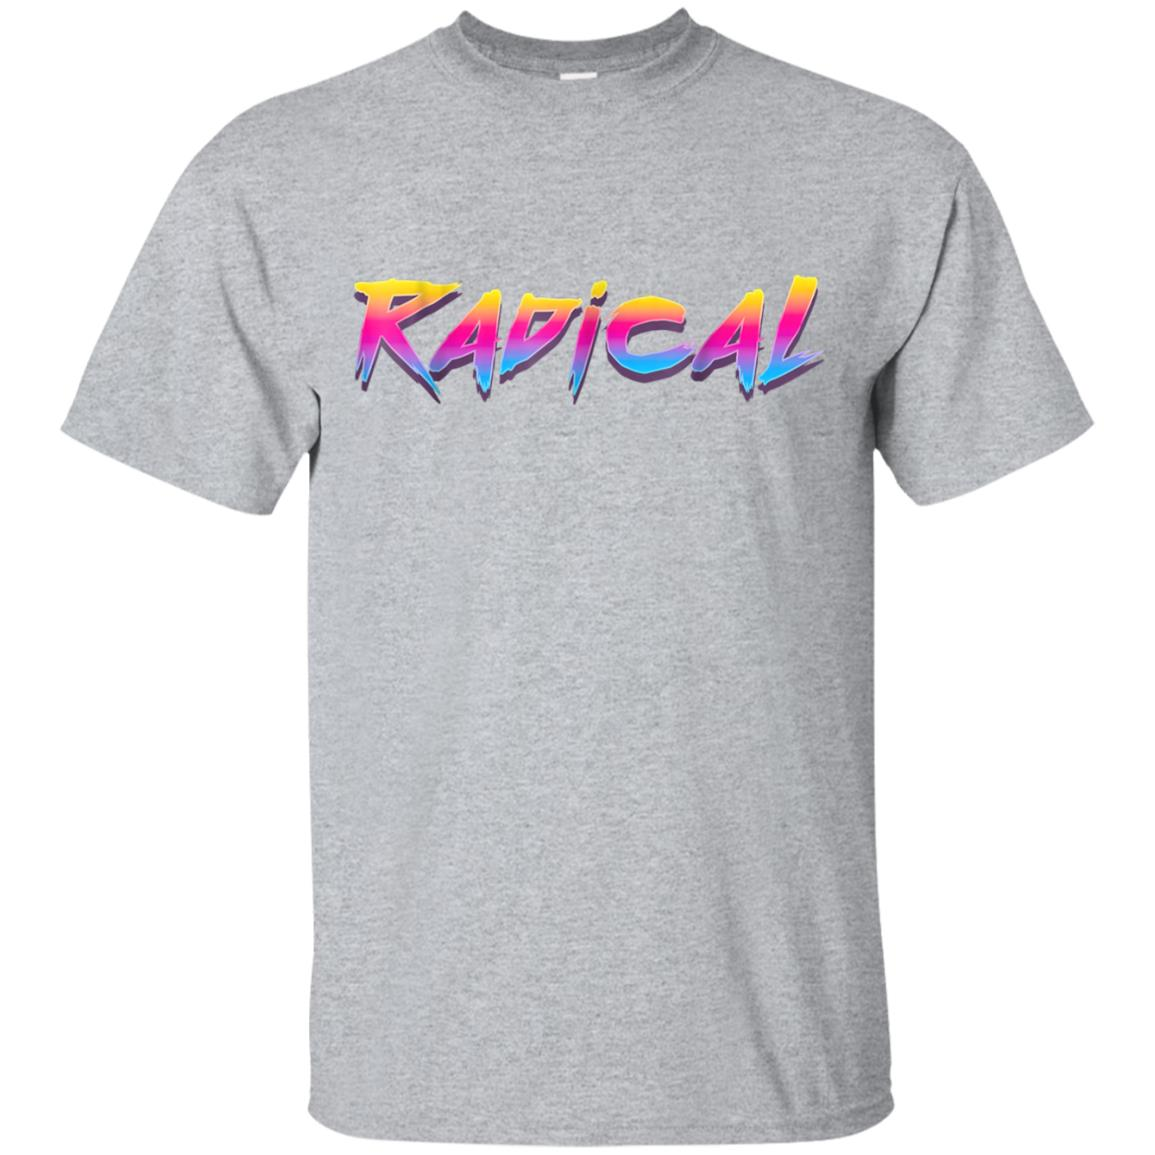 Radical Retro 80s 90s Vintage Neon T-Shirt Outrun Synthwave 99promocode